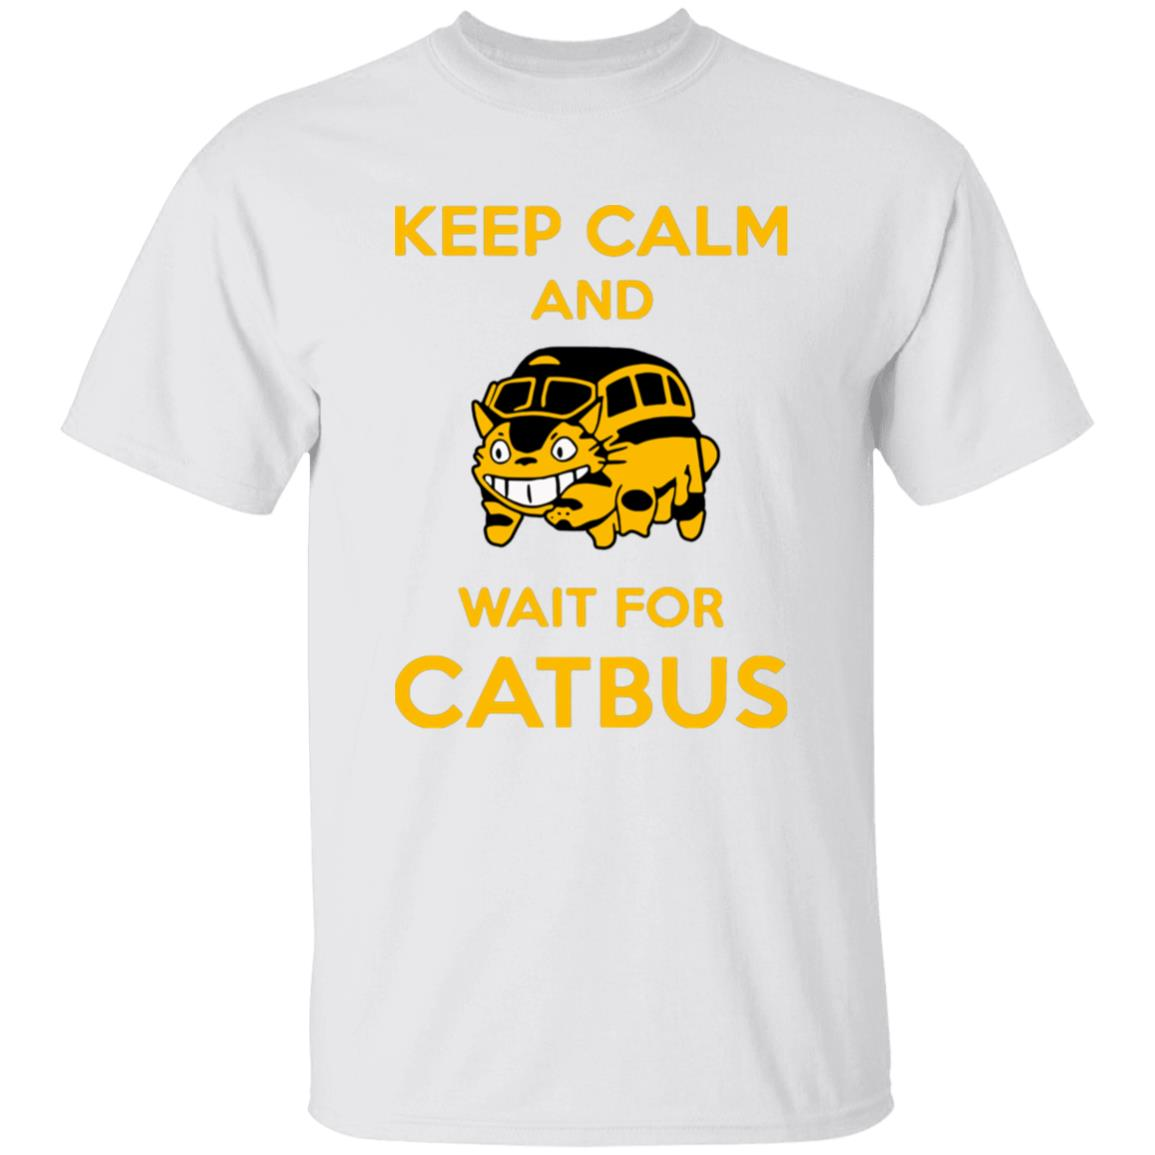 My Neighbor Totoro Keep Calm and Wait for Cat Bus T Shirt